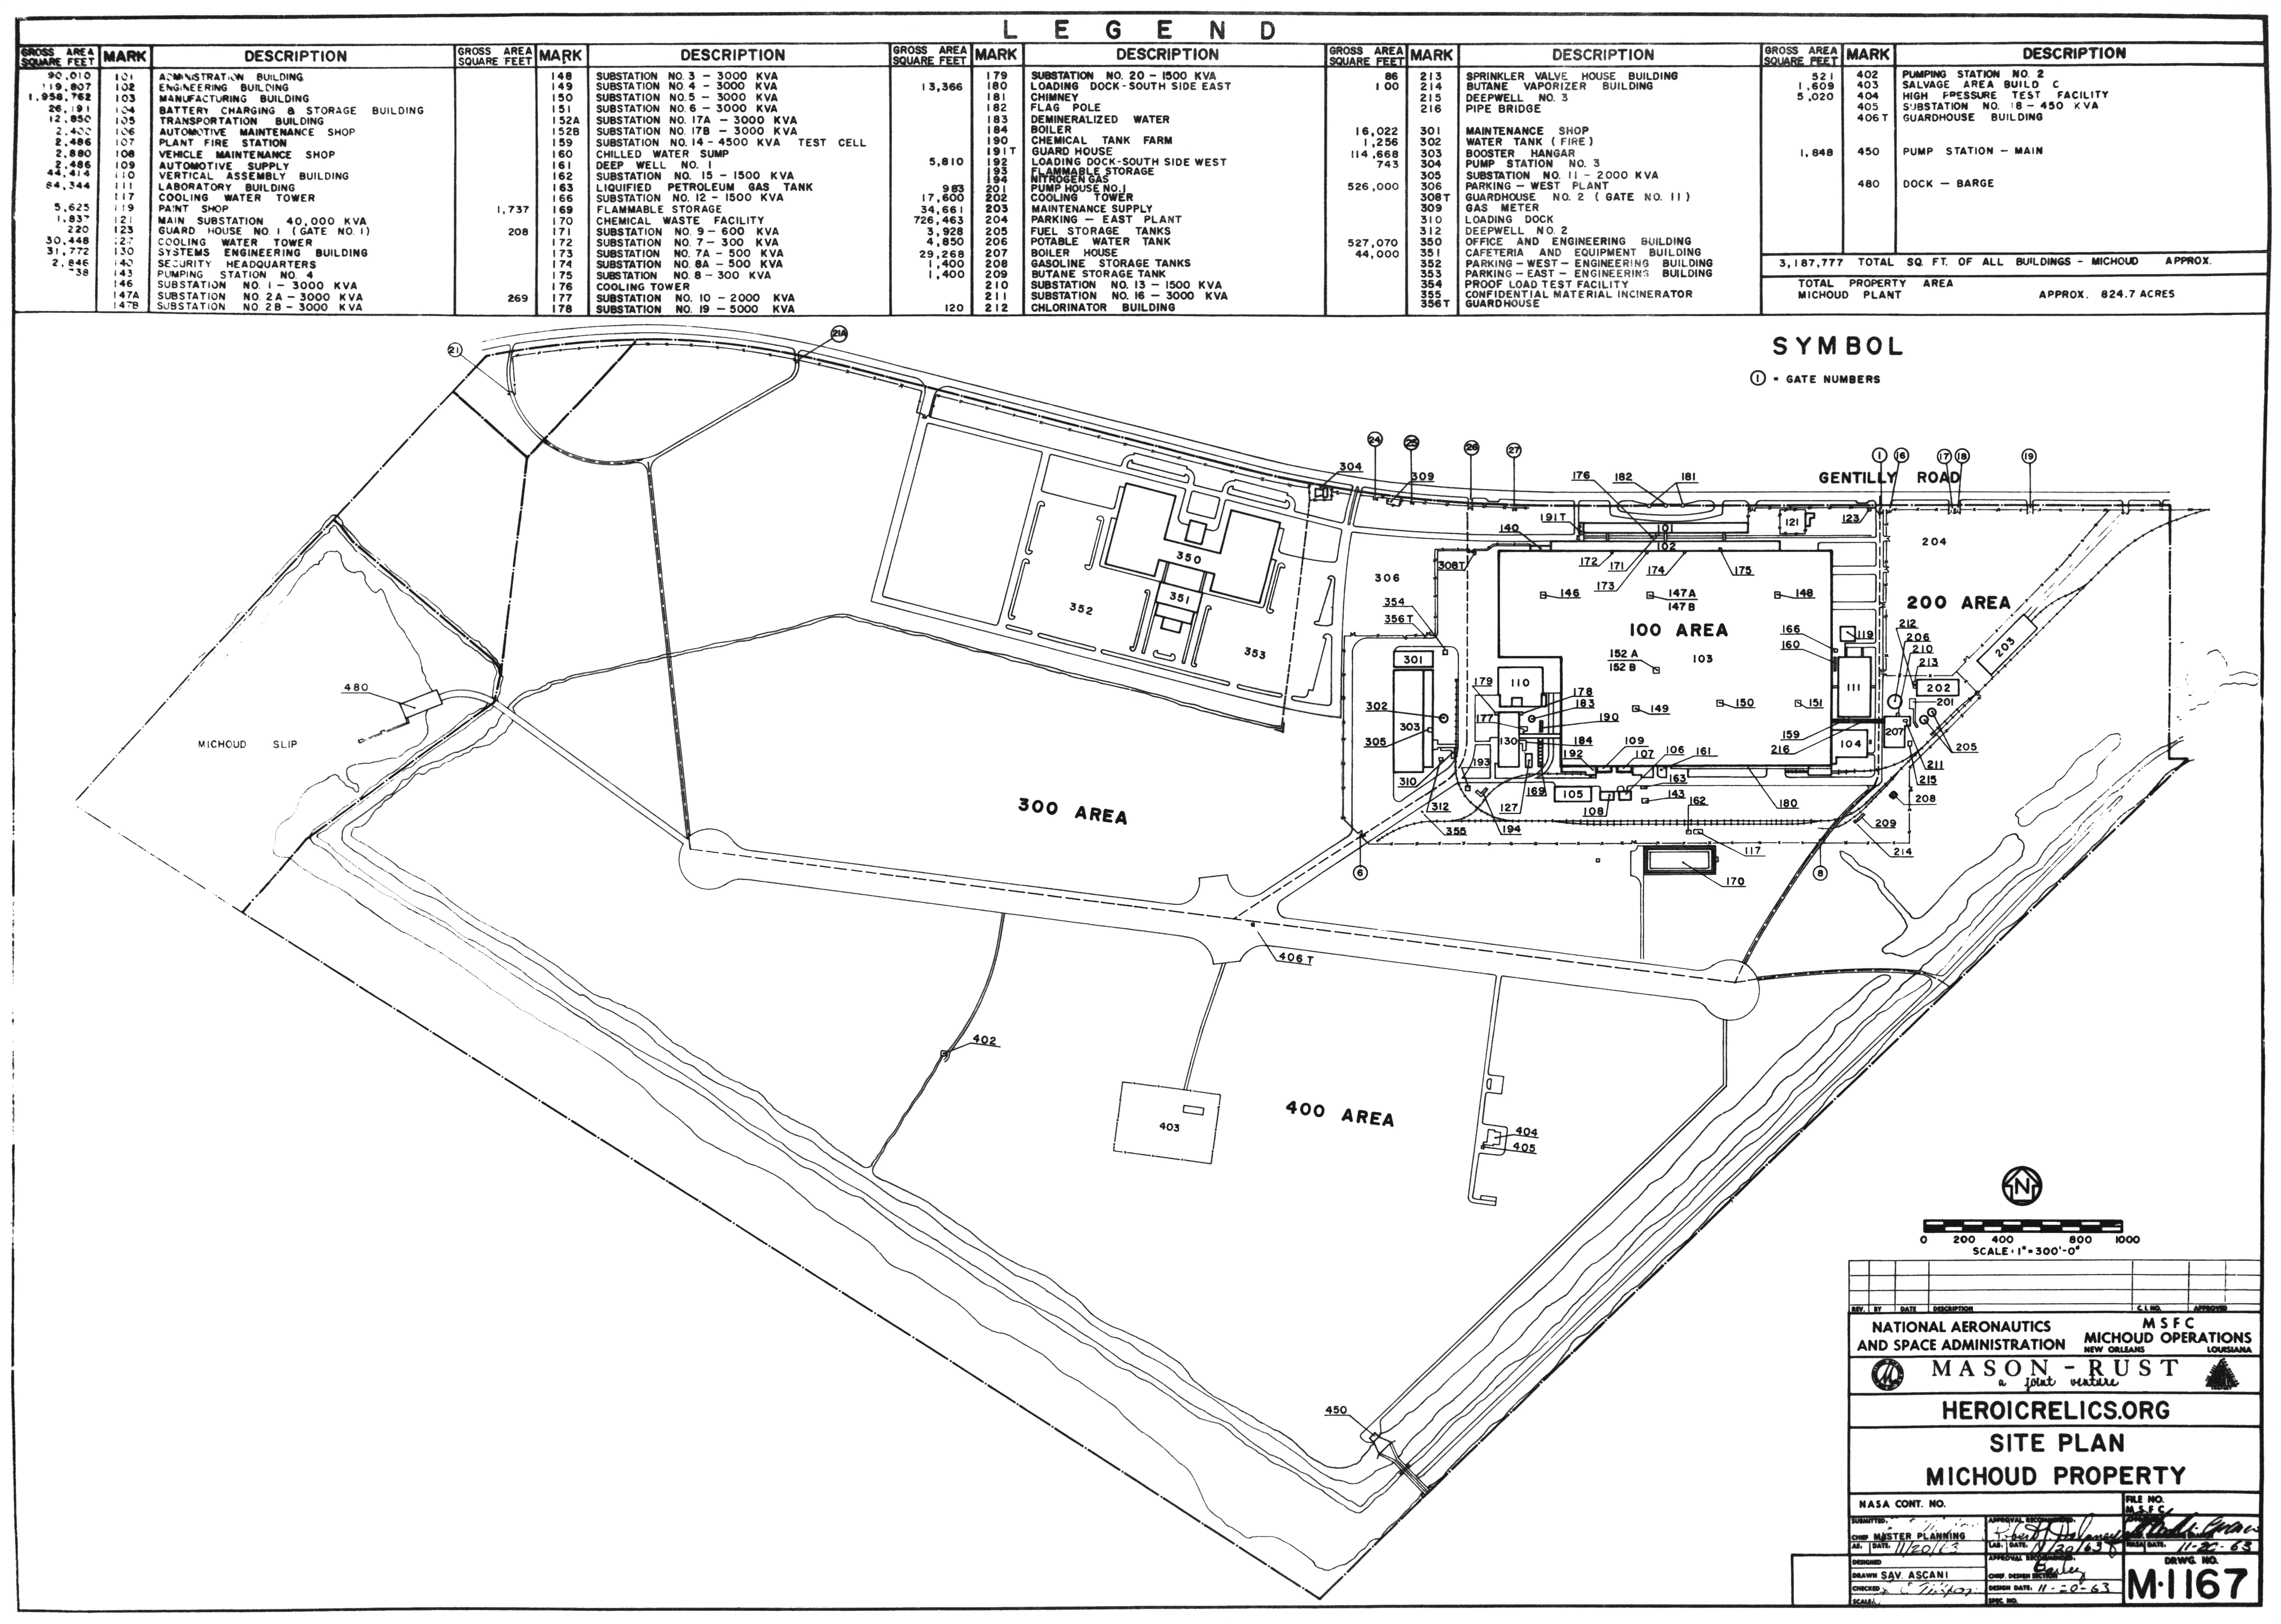 michoud assembly facility maps - michoud assembly facility michoud operations map